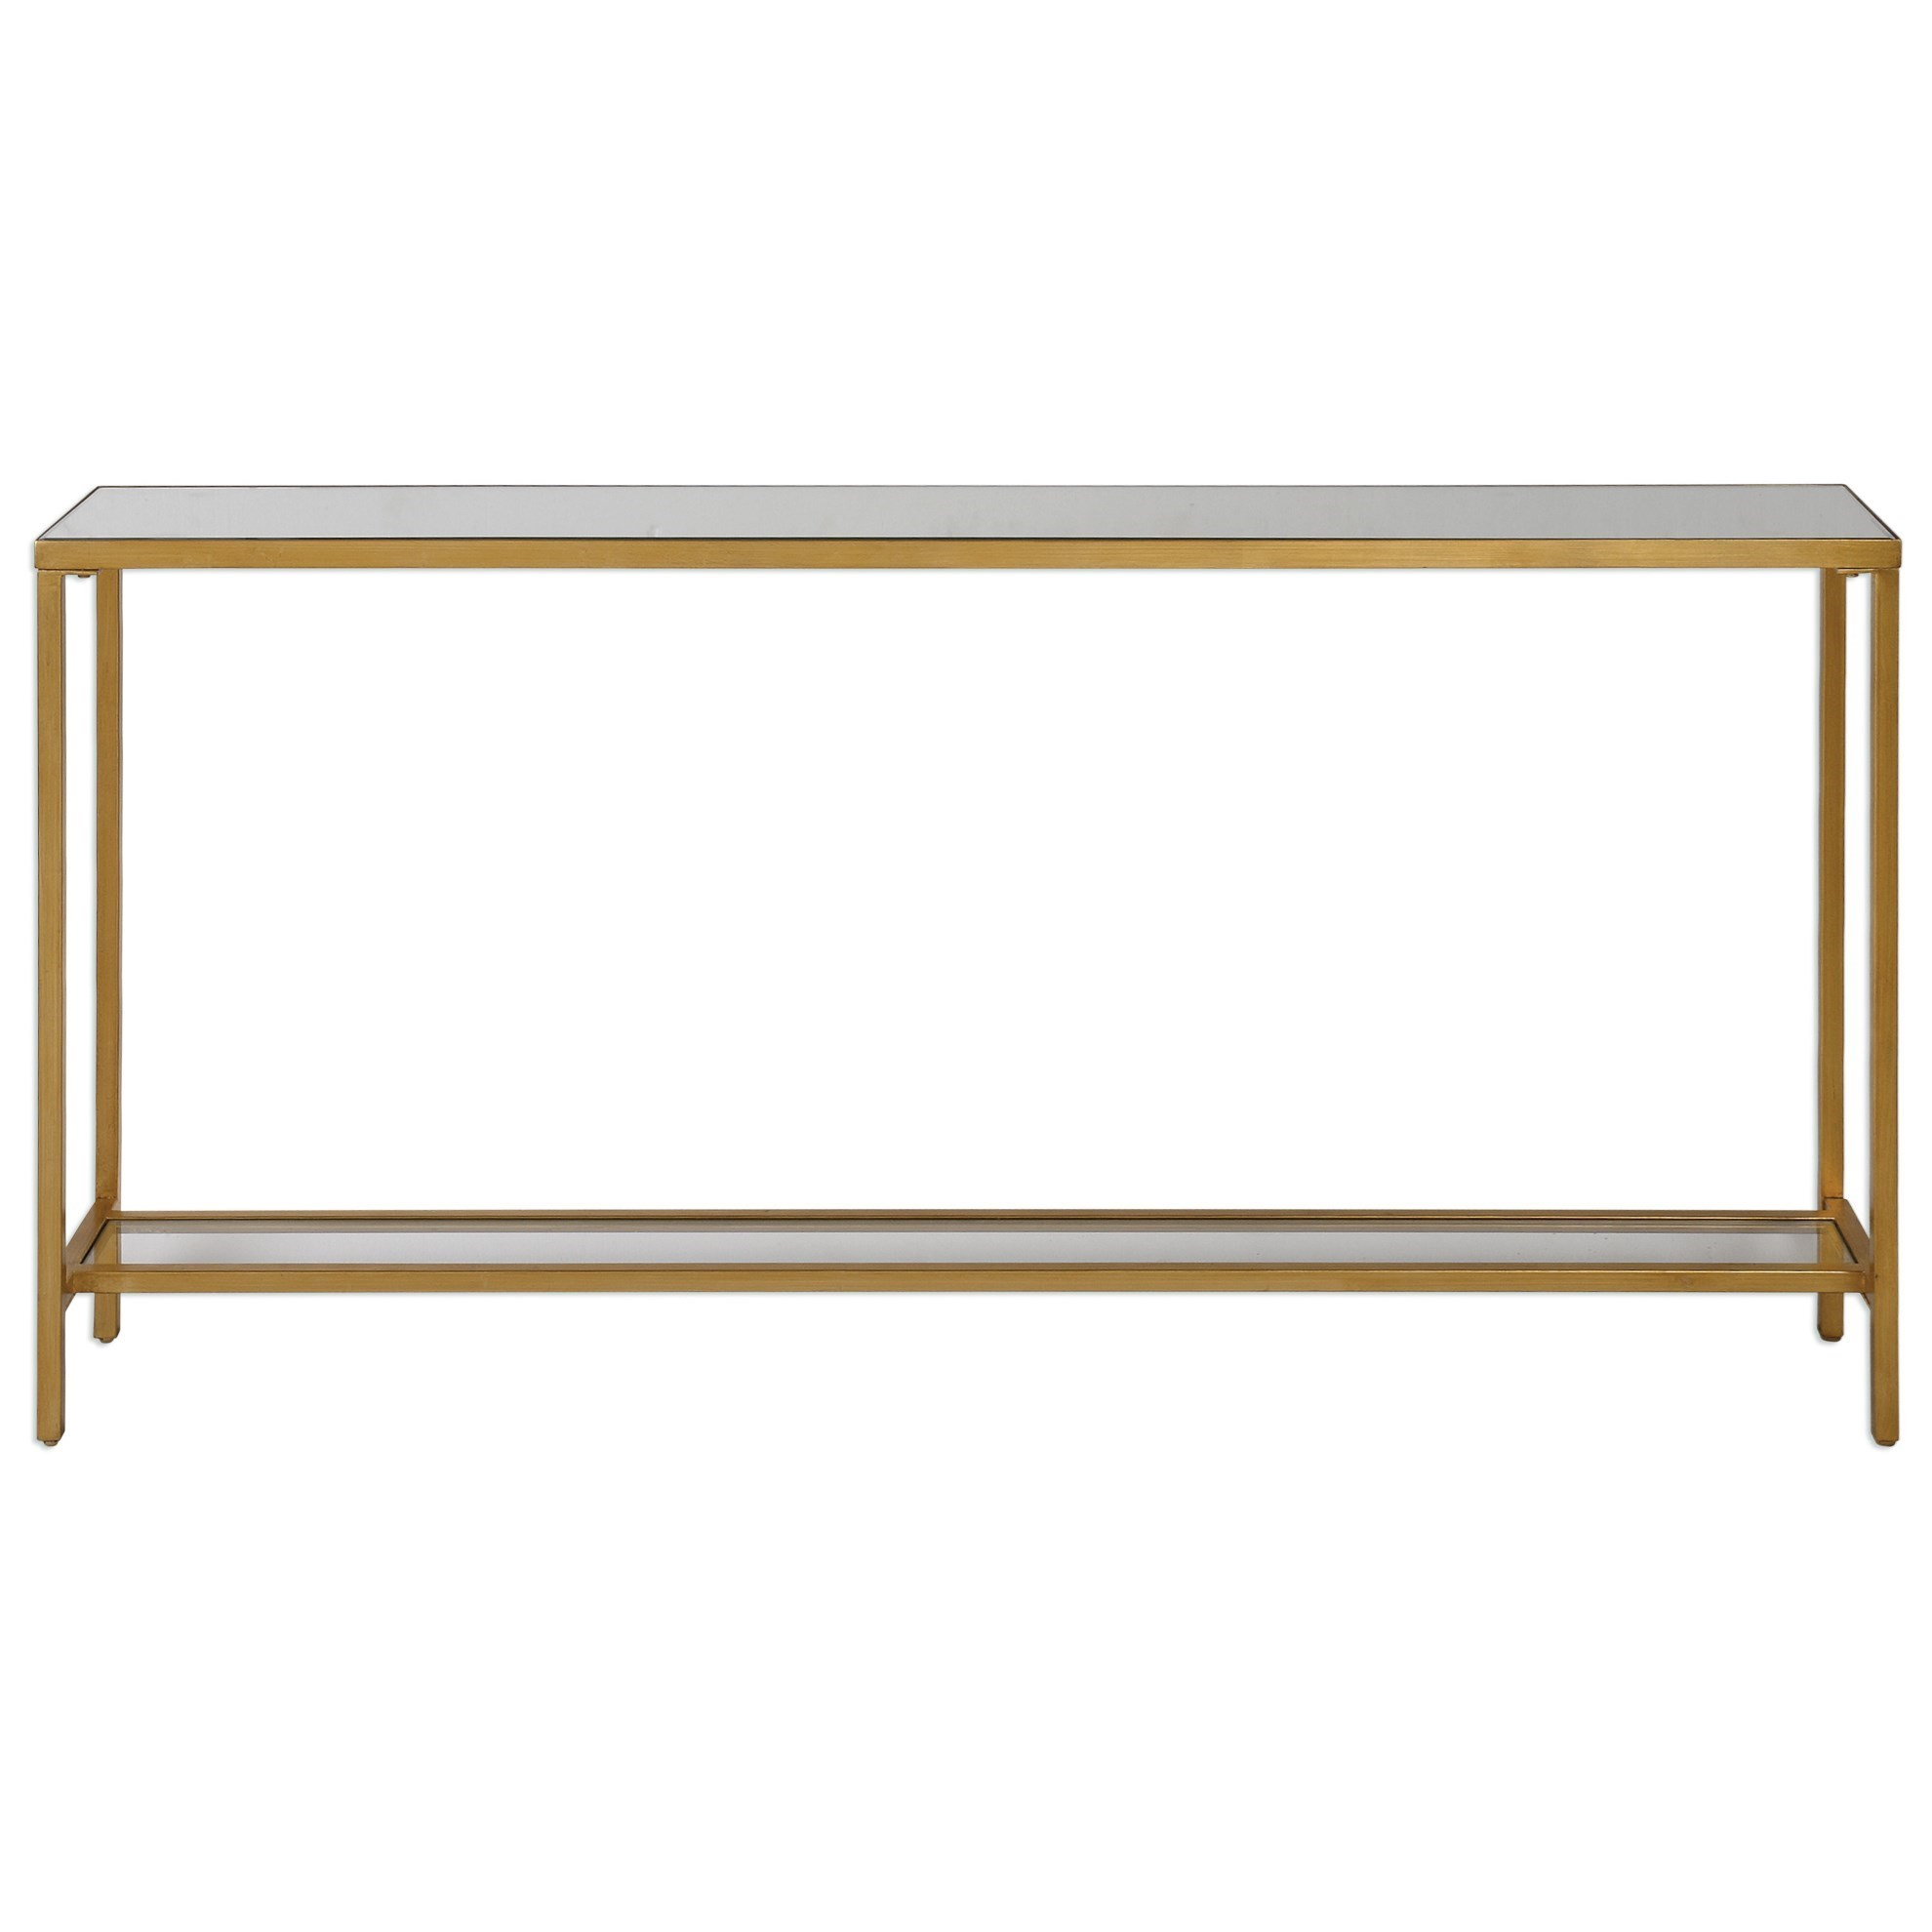 Accent Furniture - Occasional Tables Hayley Console Table by Uttermost at Factory Direct Furniture